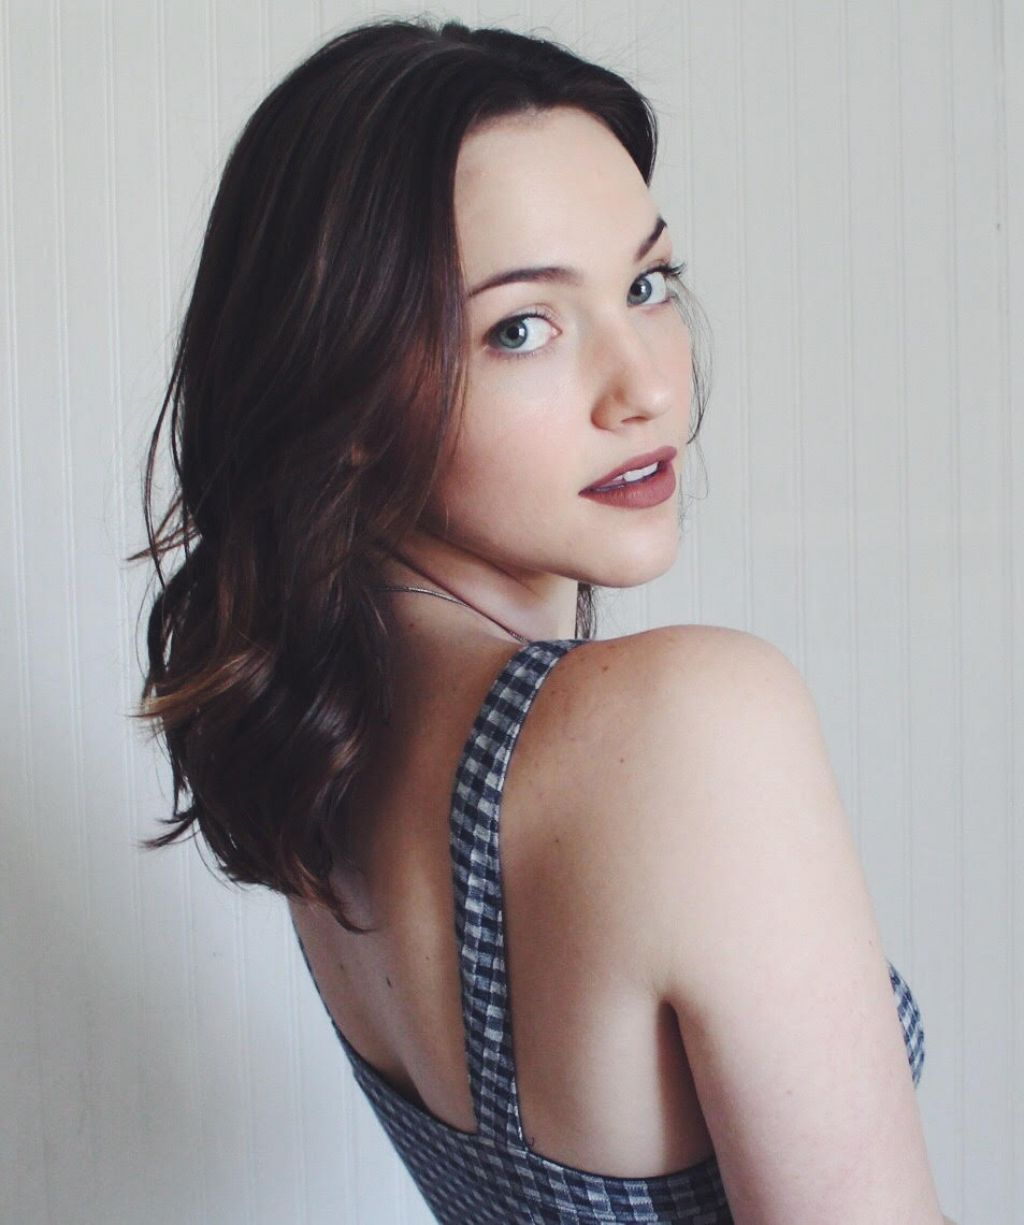 Celebrites Violett Beane nude photos 2019